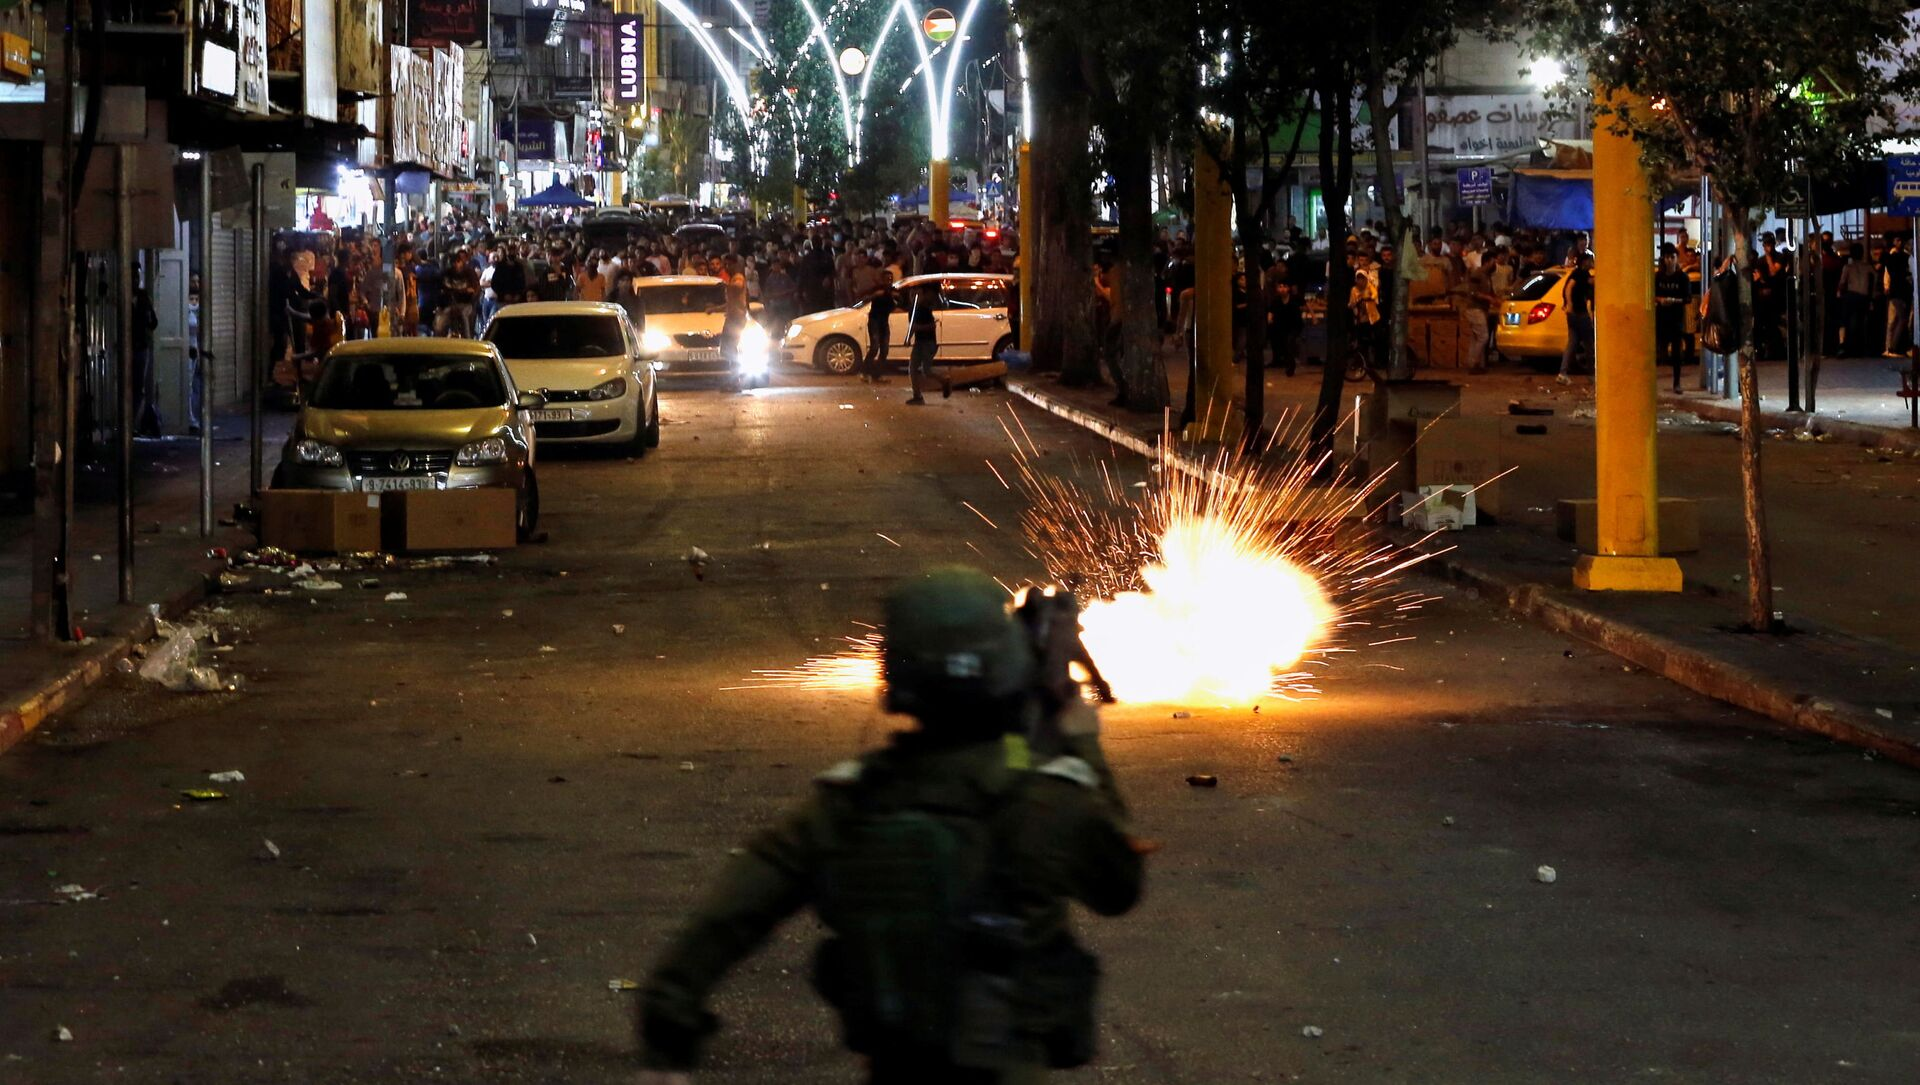 A stun grenade fired by Israeli forces explodes as Palestinians take part in an anti-Israel protest amid a flare-up of Israeli-Palestinian violence, in Hebron in the Israeli-occupied West Bank May 11, 2021. - Sputnik International, 1920, 25.07.2021